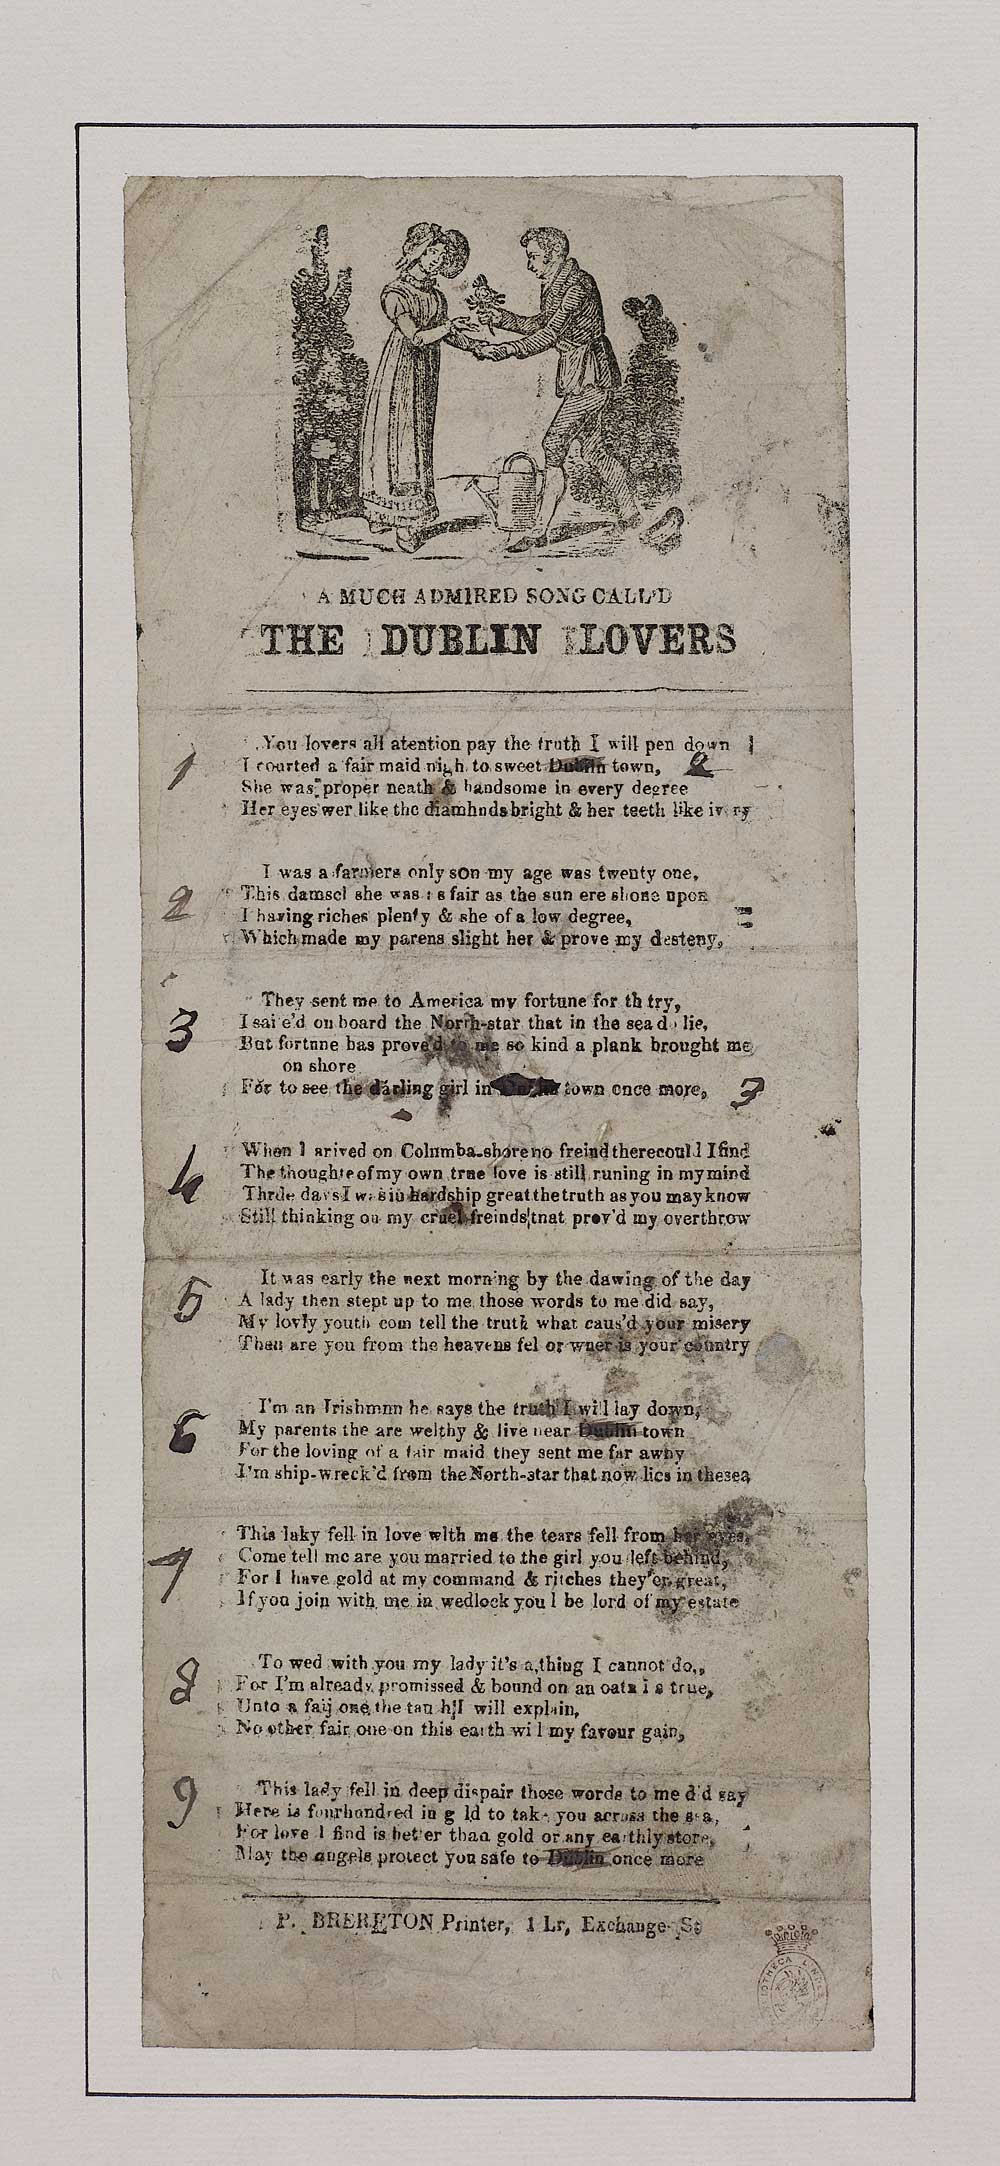 Much admired song call'd The Dublin lovers - Courtship & marriage